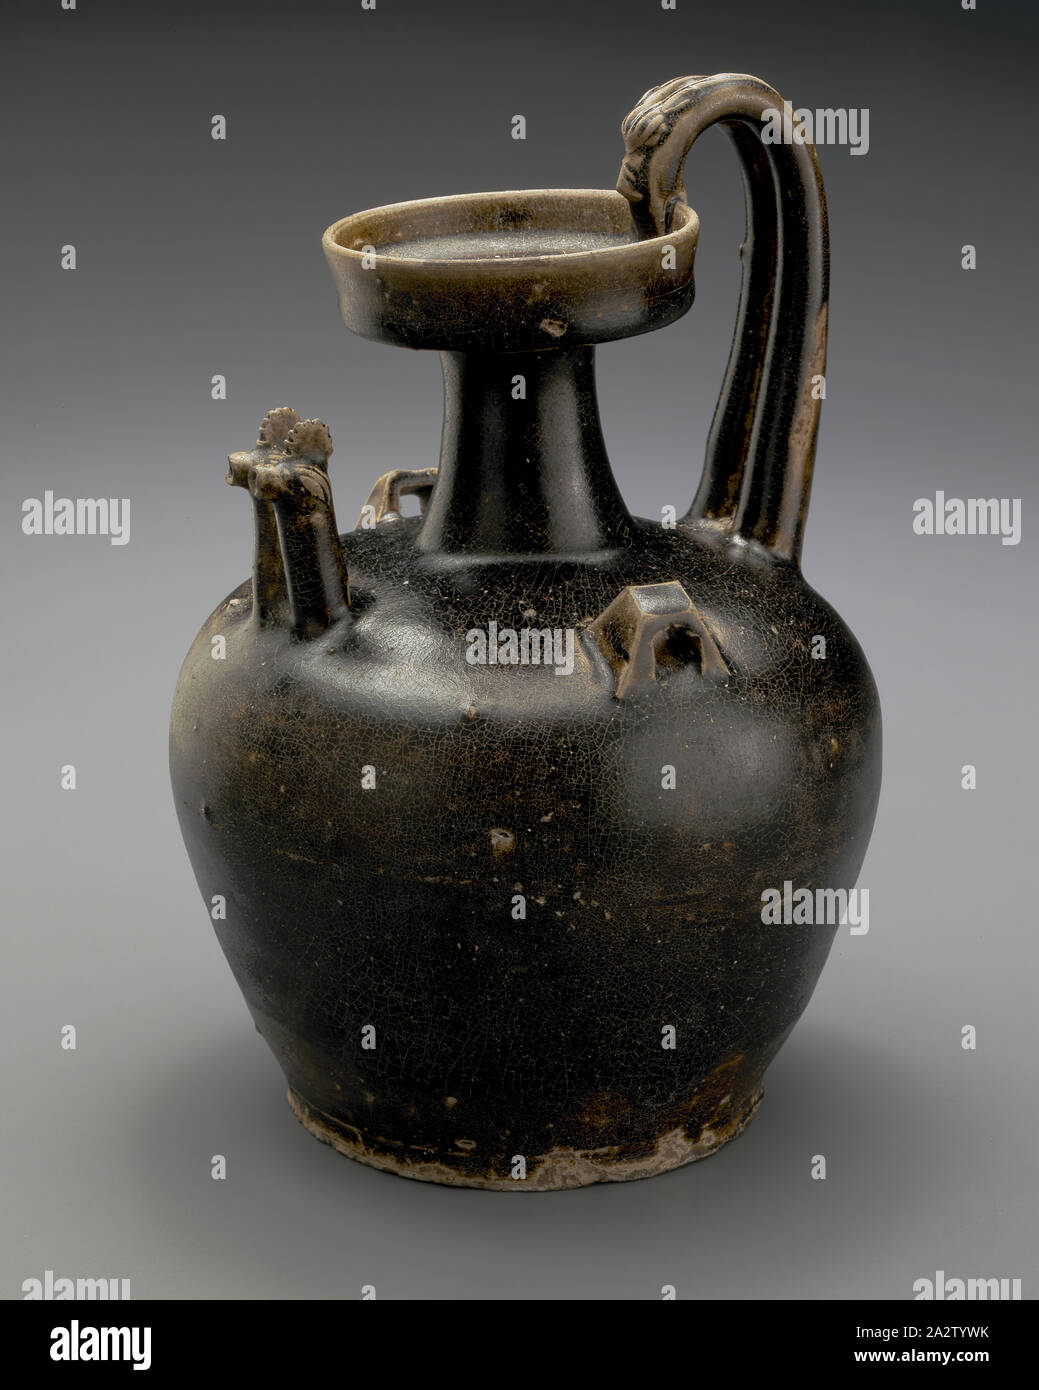 ewer with twin chicken-head spouts and dragon handle, Eastern Jin dynasty, Eastern Jin dynasty, 317-420, stoneware with glaze, 9-1/8 x 6-1/4 x 6-1/4 in., Asian Art Stock Photo